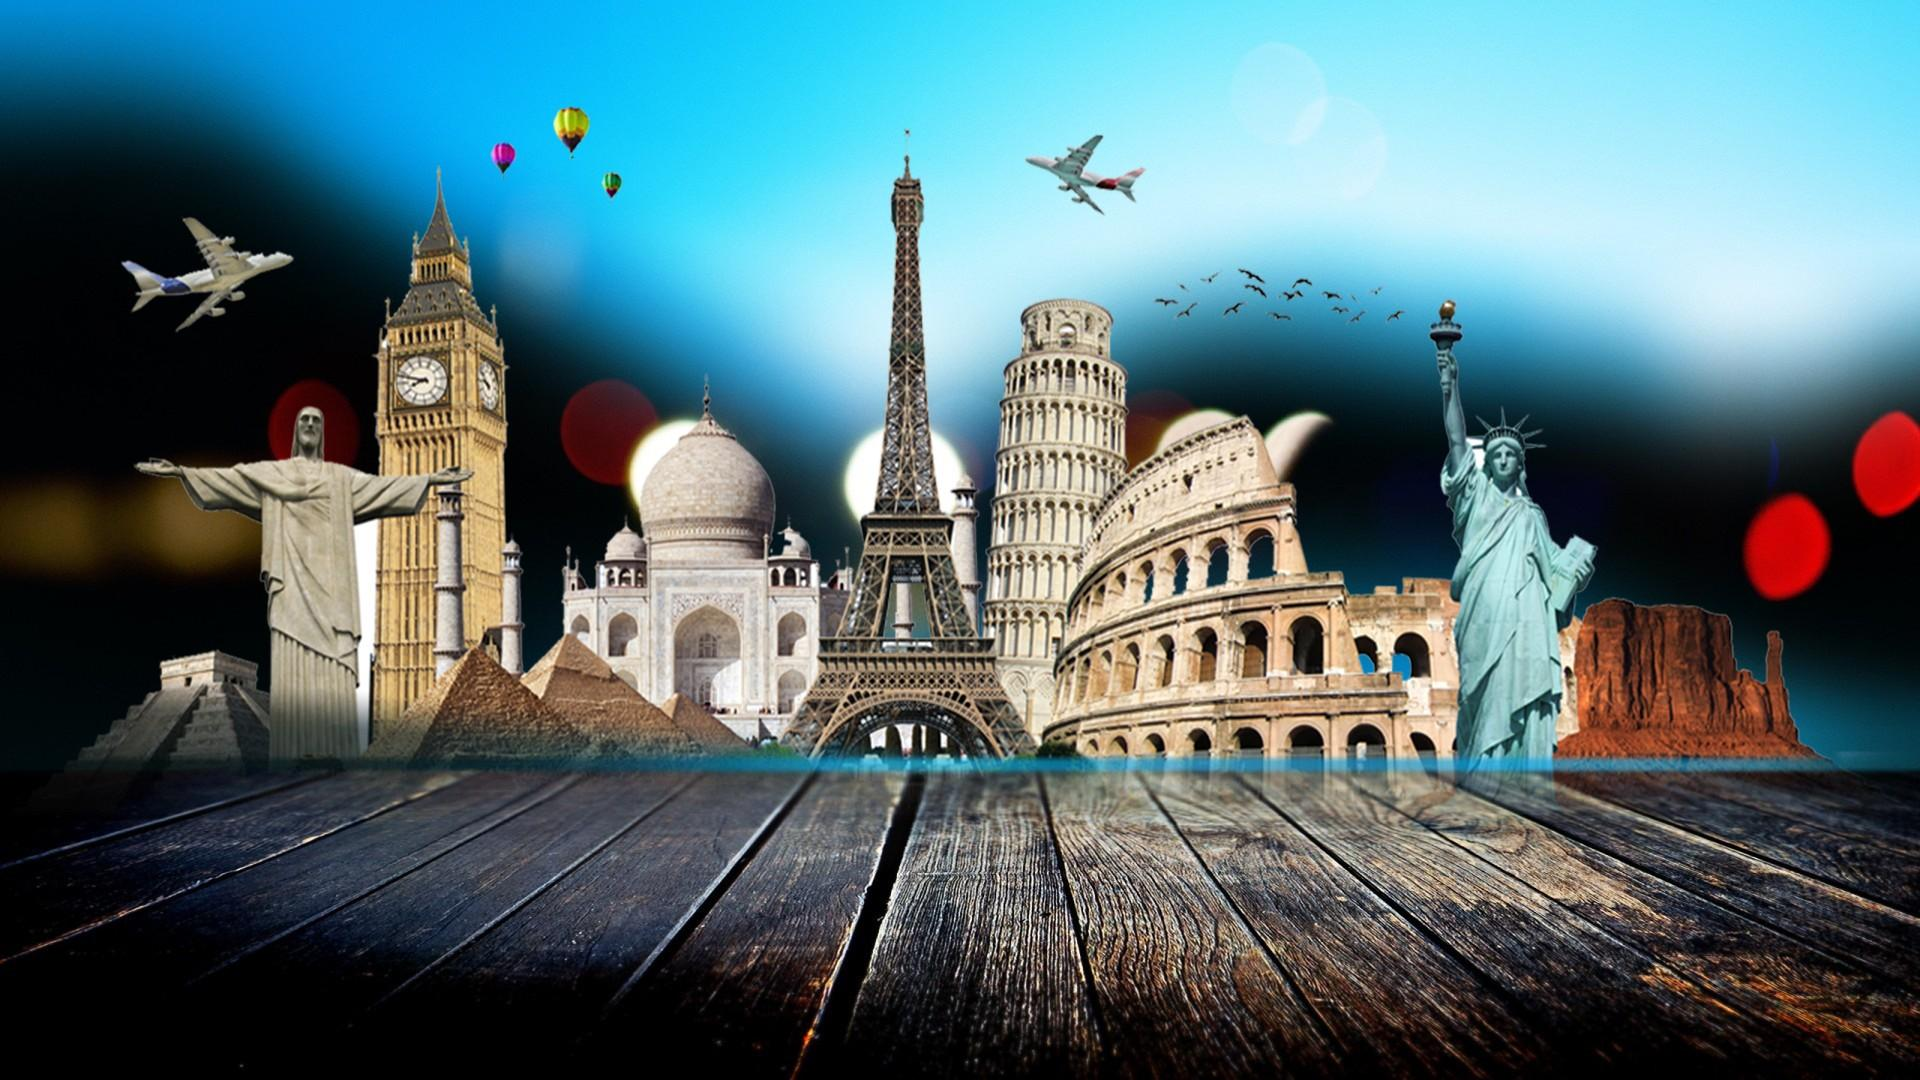 Travel Wallpapers Hd Backgrounds Images Pics Photos Free Download